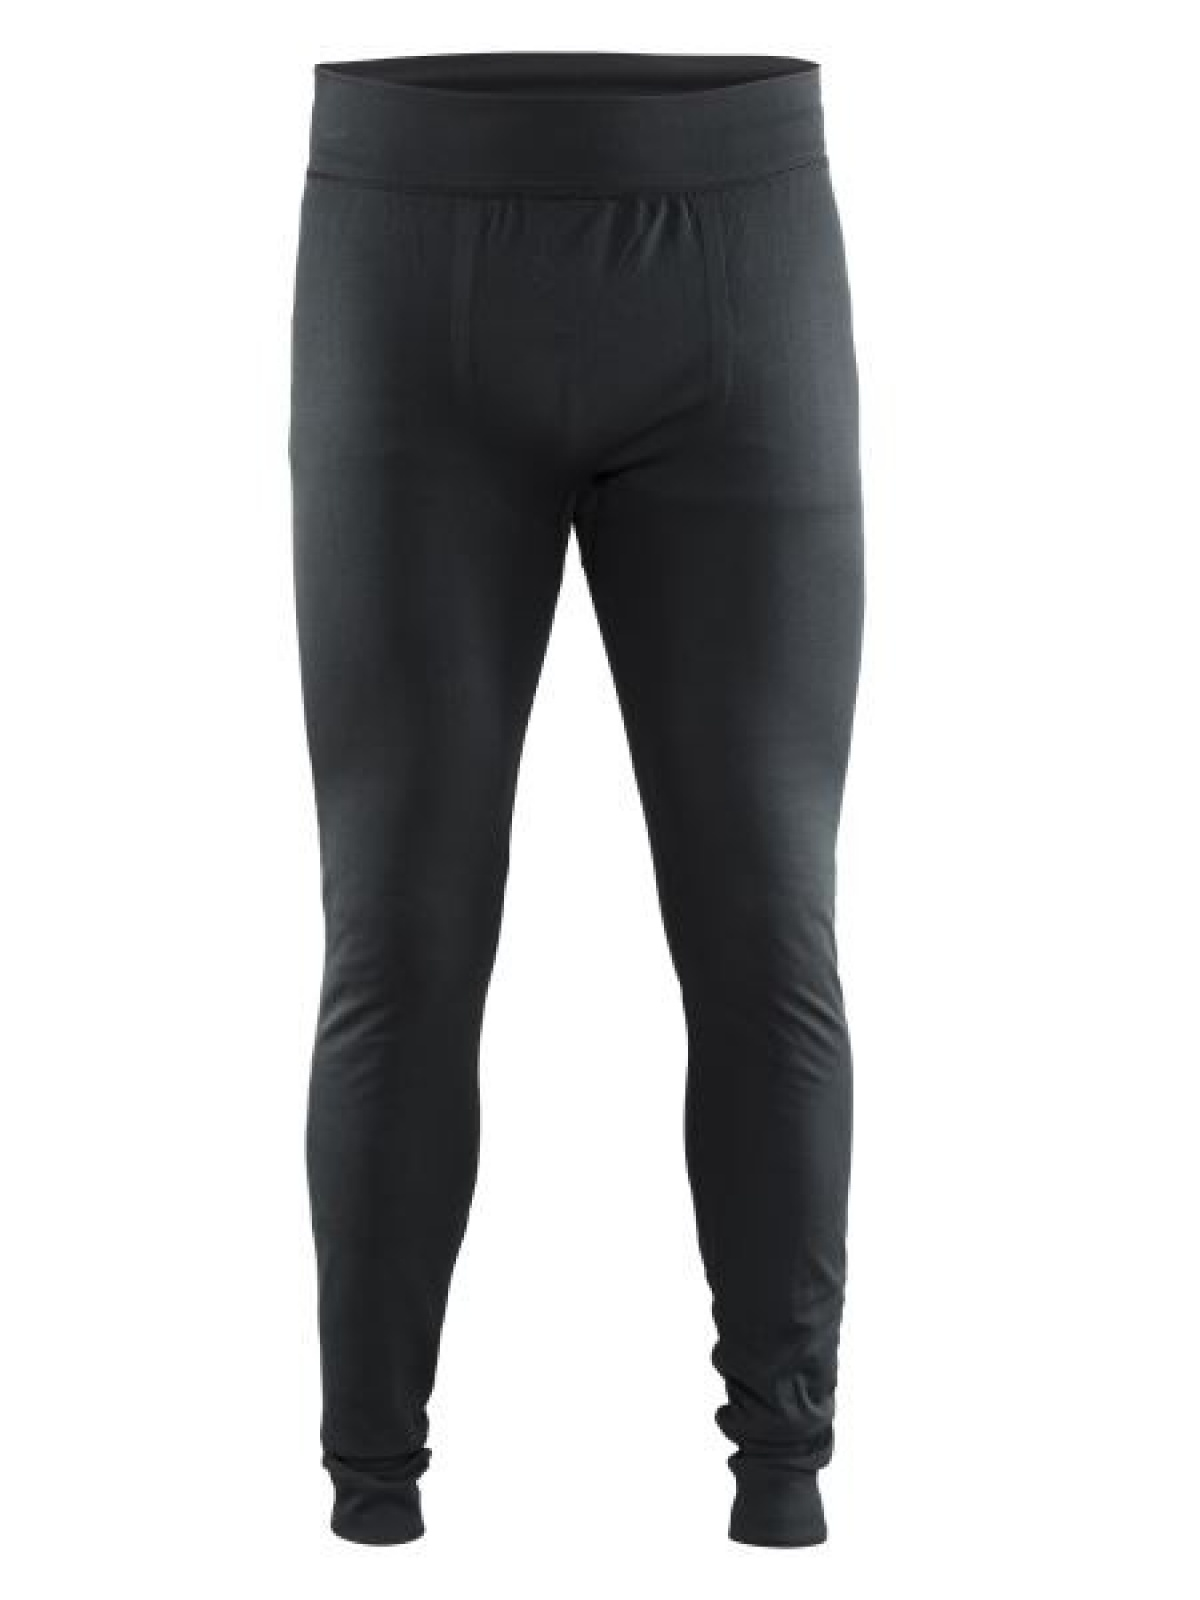 Брюки Craft Active Comfort Pants M муж.